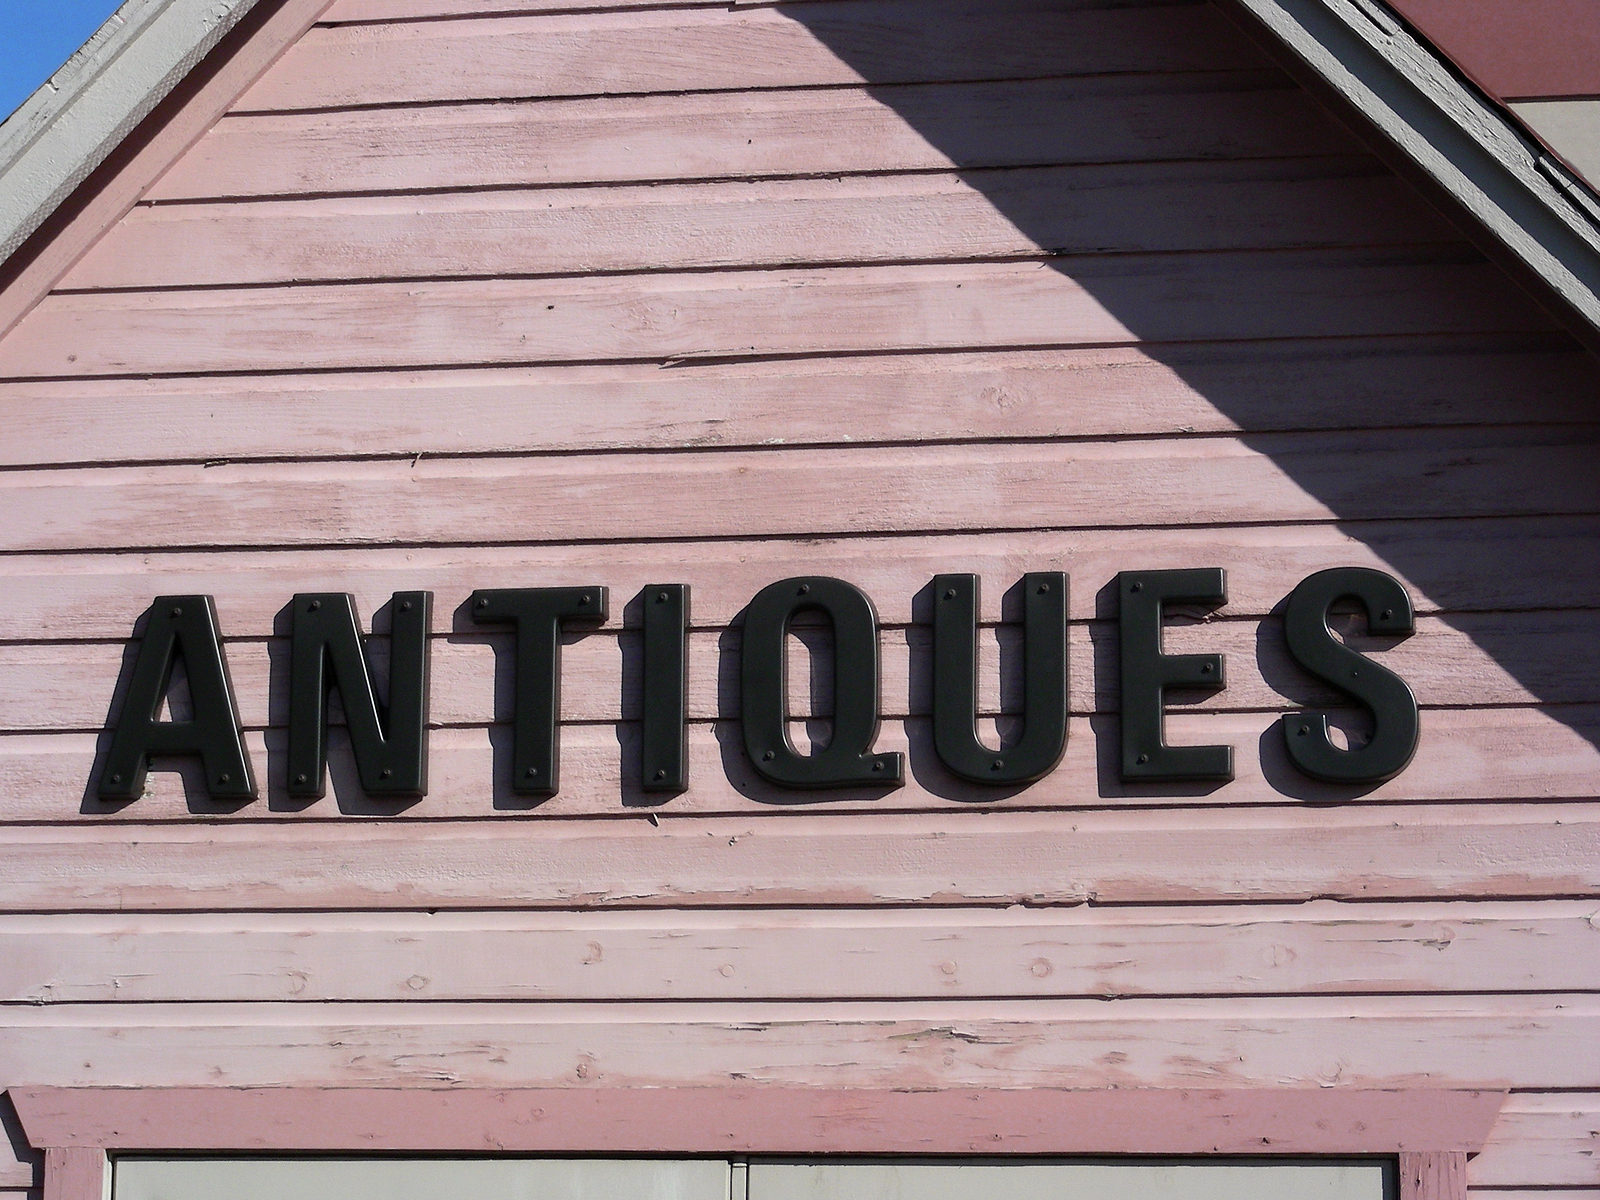 A business selling antique items